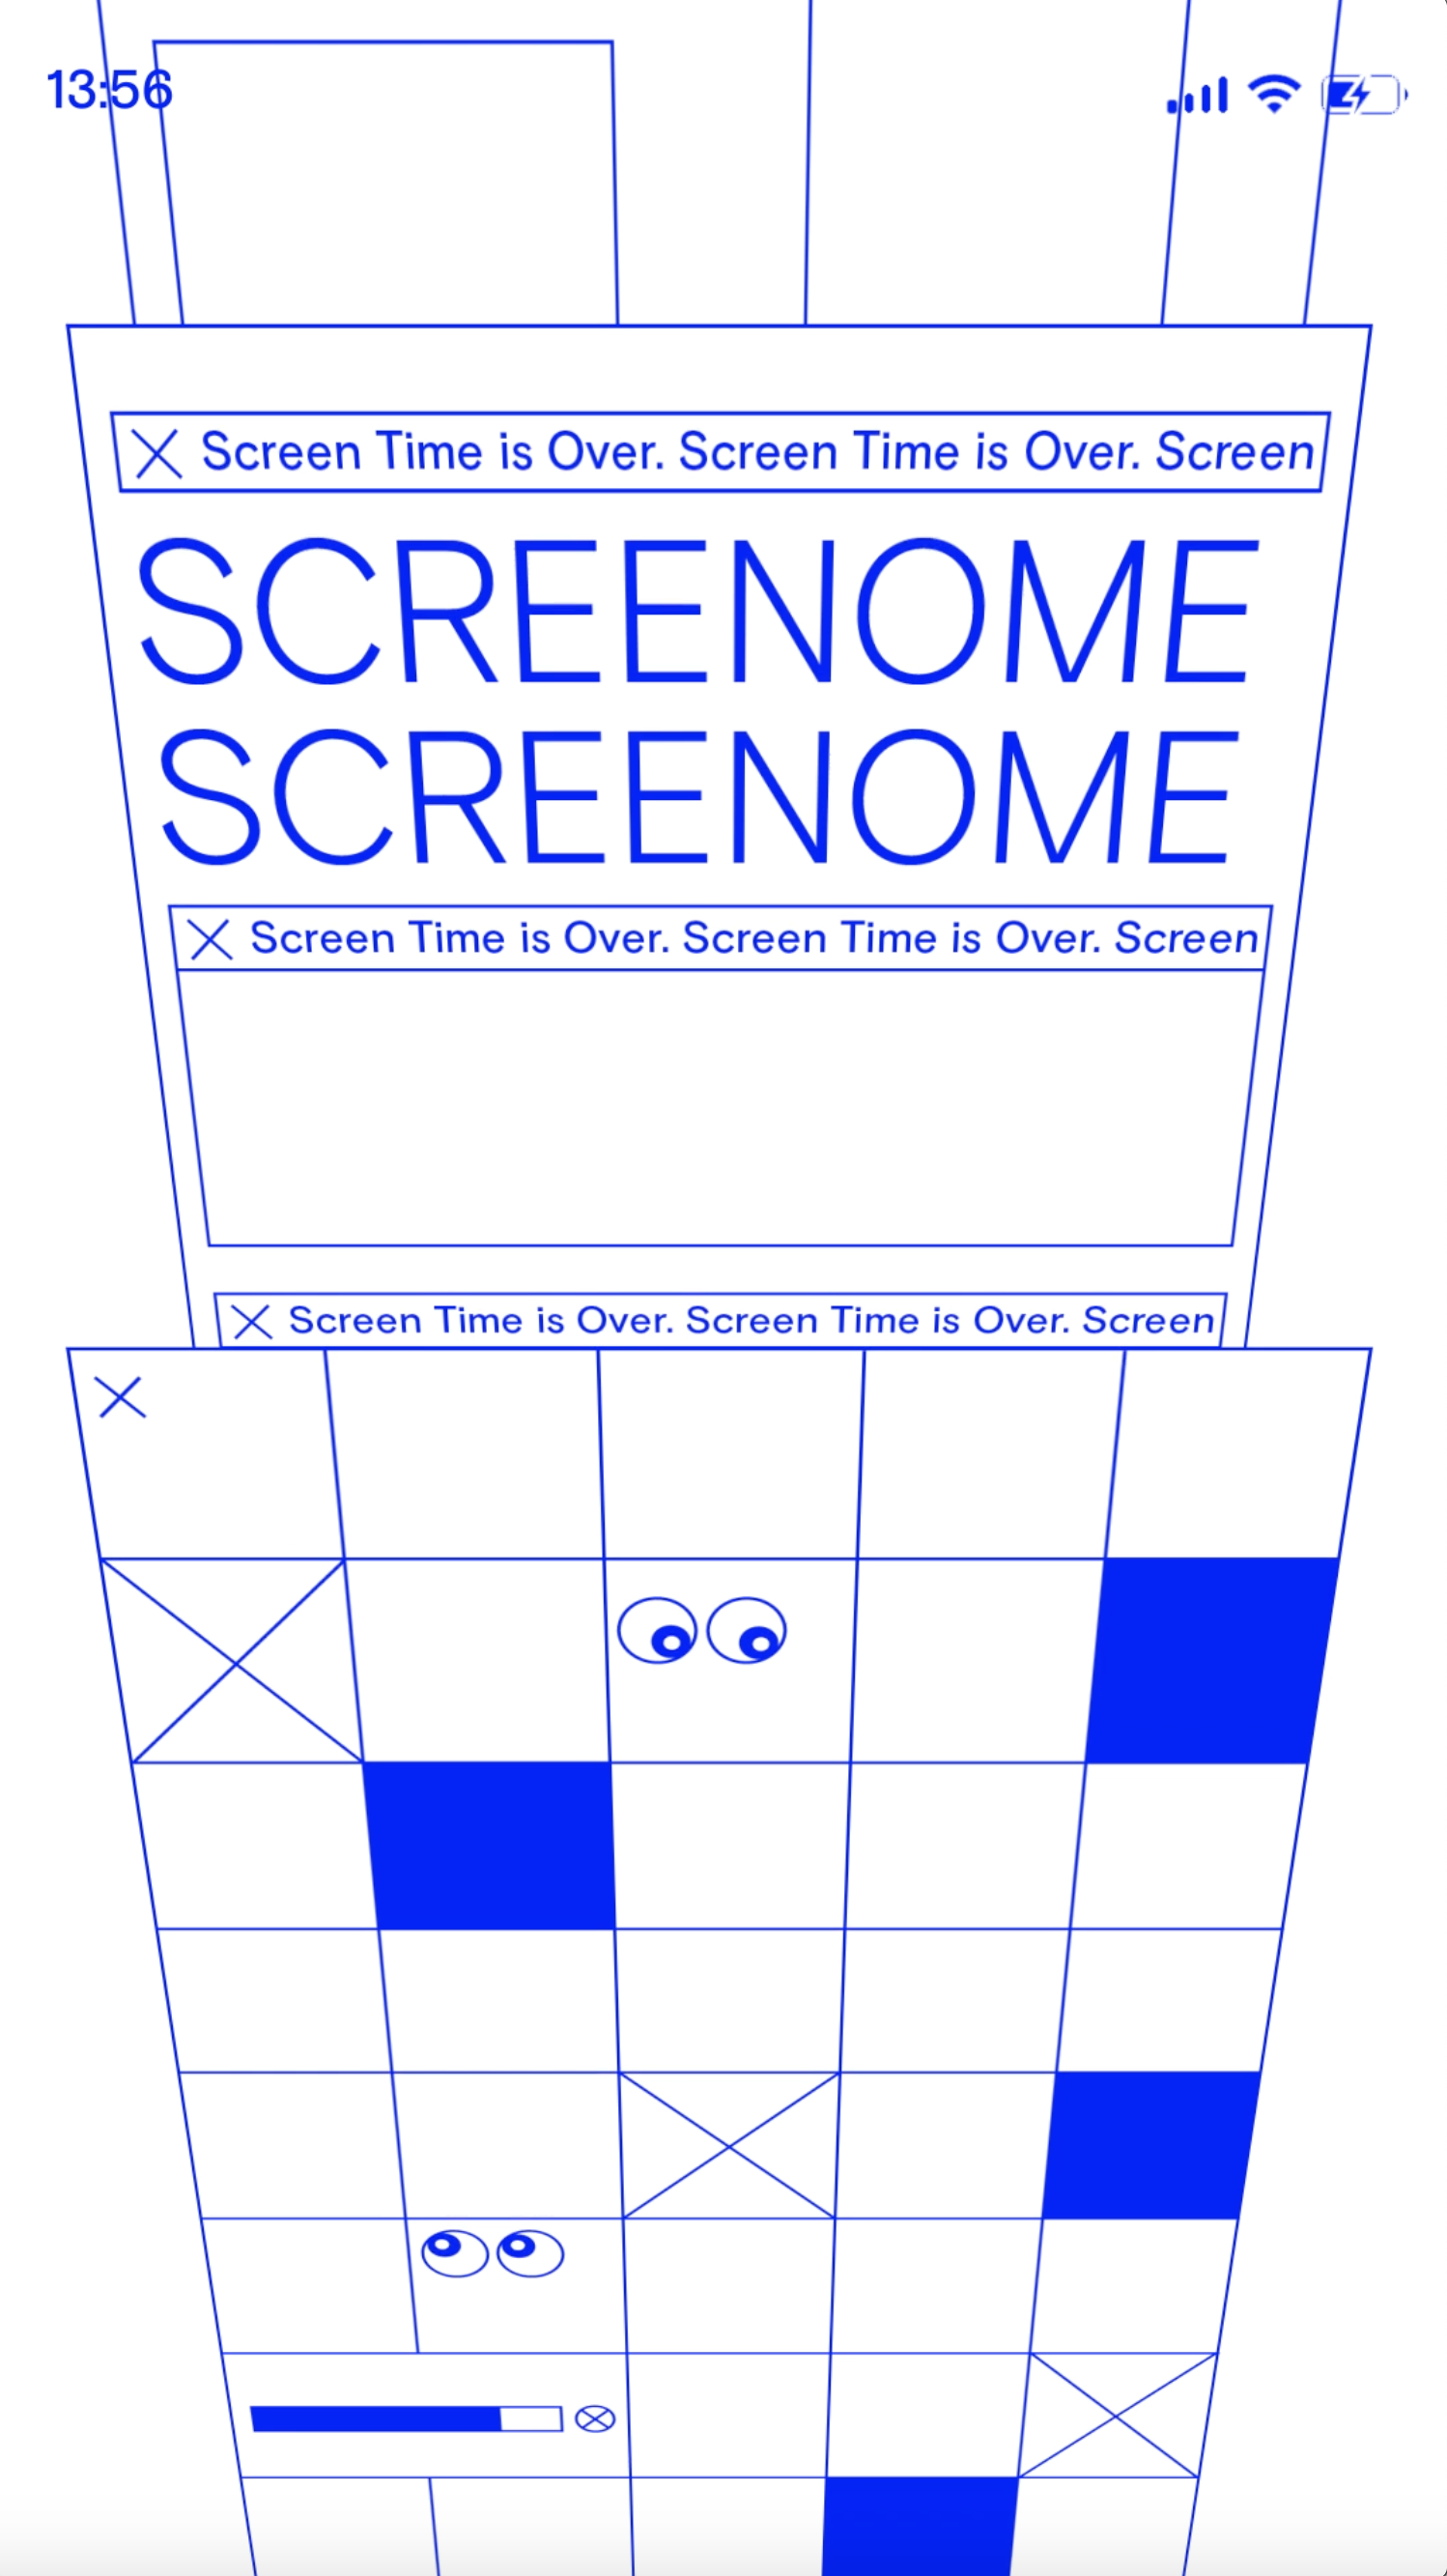 Screenome-02.png